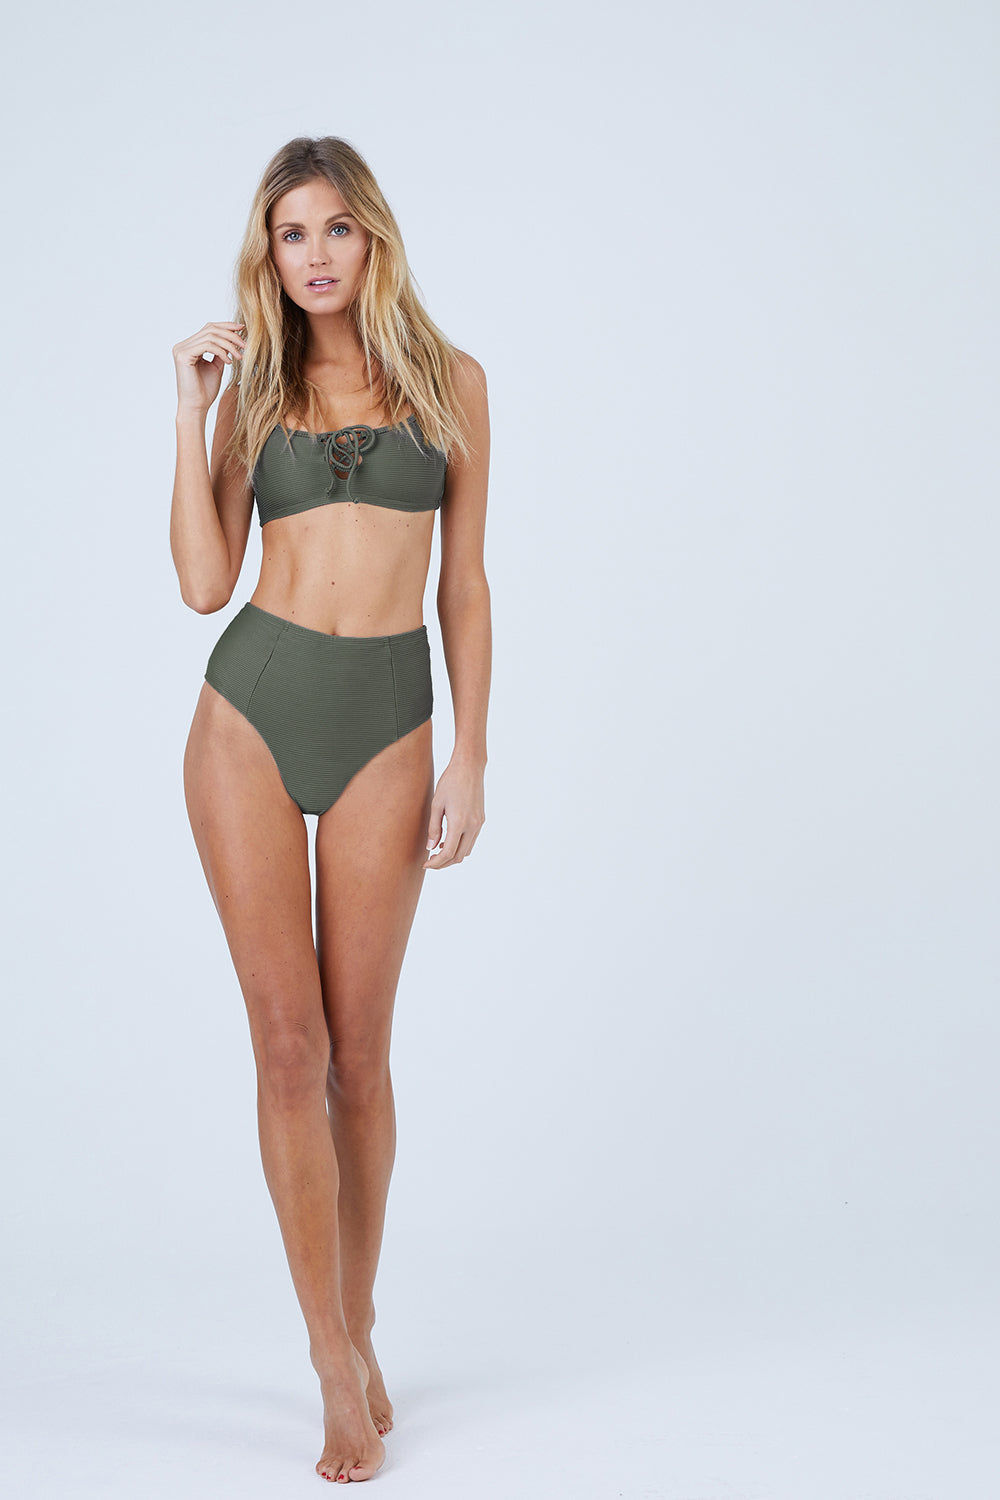 ONIA Erin Lace Up Front Bikini Top - Forest Green Rib Bikini Top | Forest Green Rib| Onia Erin Lace Up Front Bikini Top - Forest Slight Scoop Neckline Lace Up Front Detail  Pull Over Style  Thick Shoulder Straps Ribbed Fabric Front View